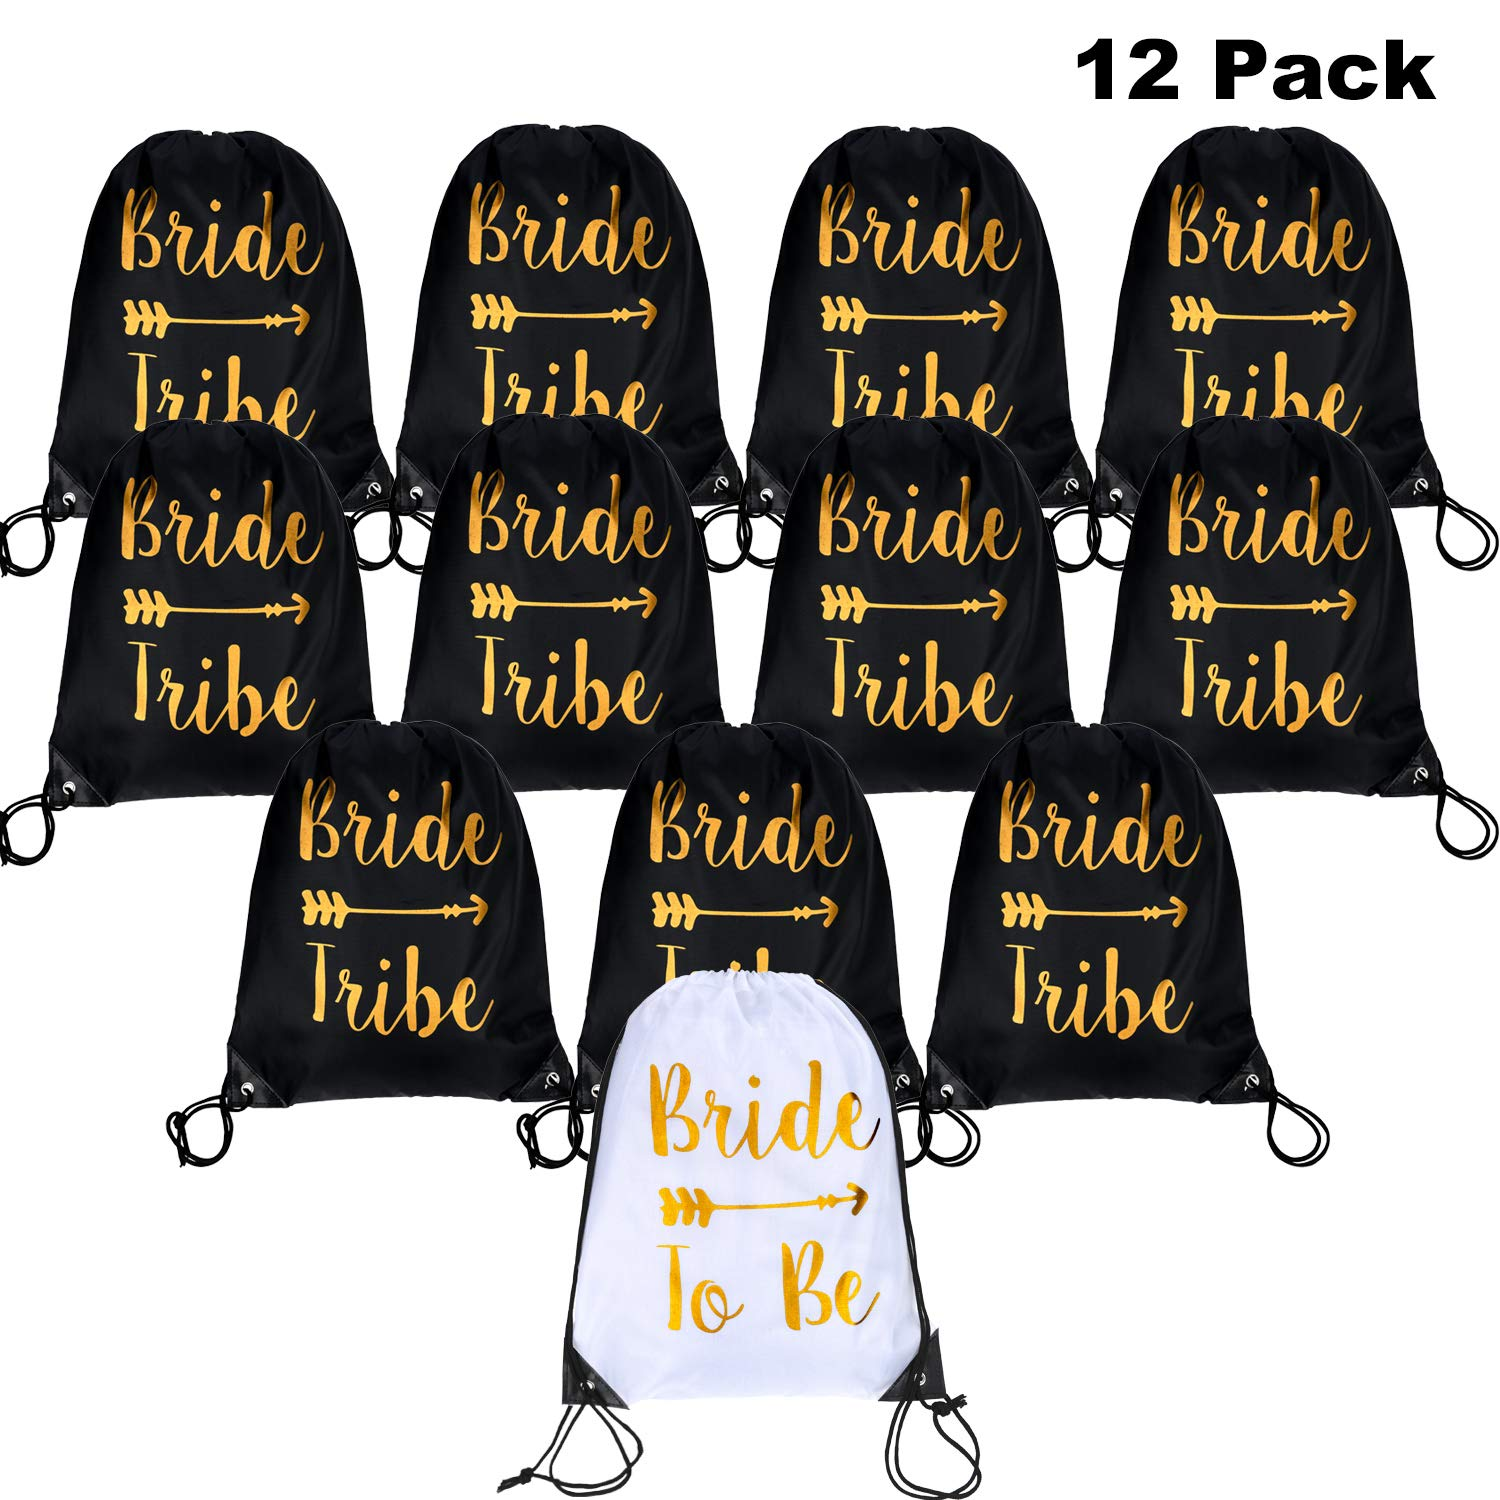 12 Pieces Bride and Bride Tribe Drawstring Bags Wedding Drawstring Gift Bag Bridal Party Favor Bags for Bridesmaids Bridal Party Bridal Shower, 16.5 x 13.4 inch (Black) by Maitys (Image #1)